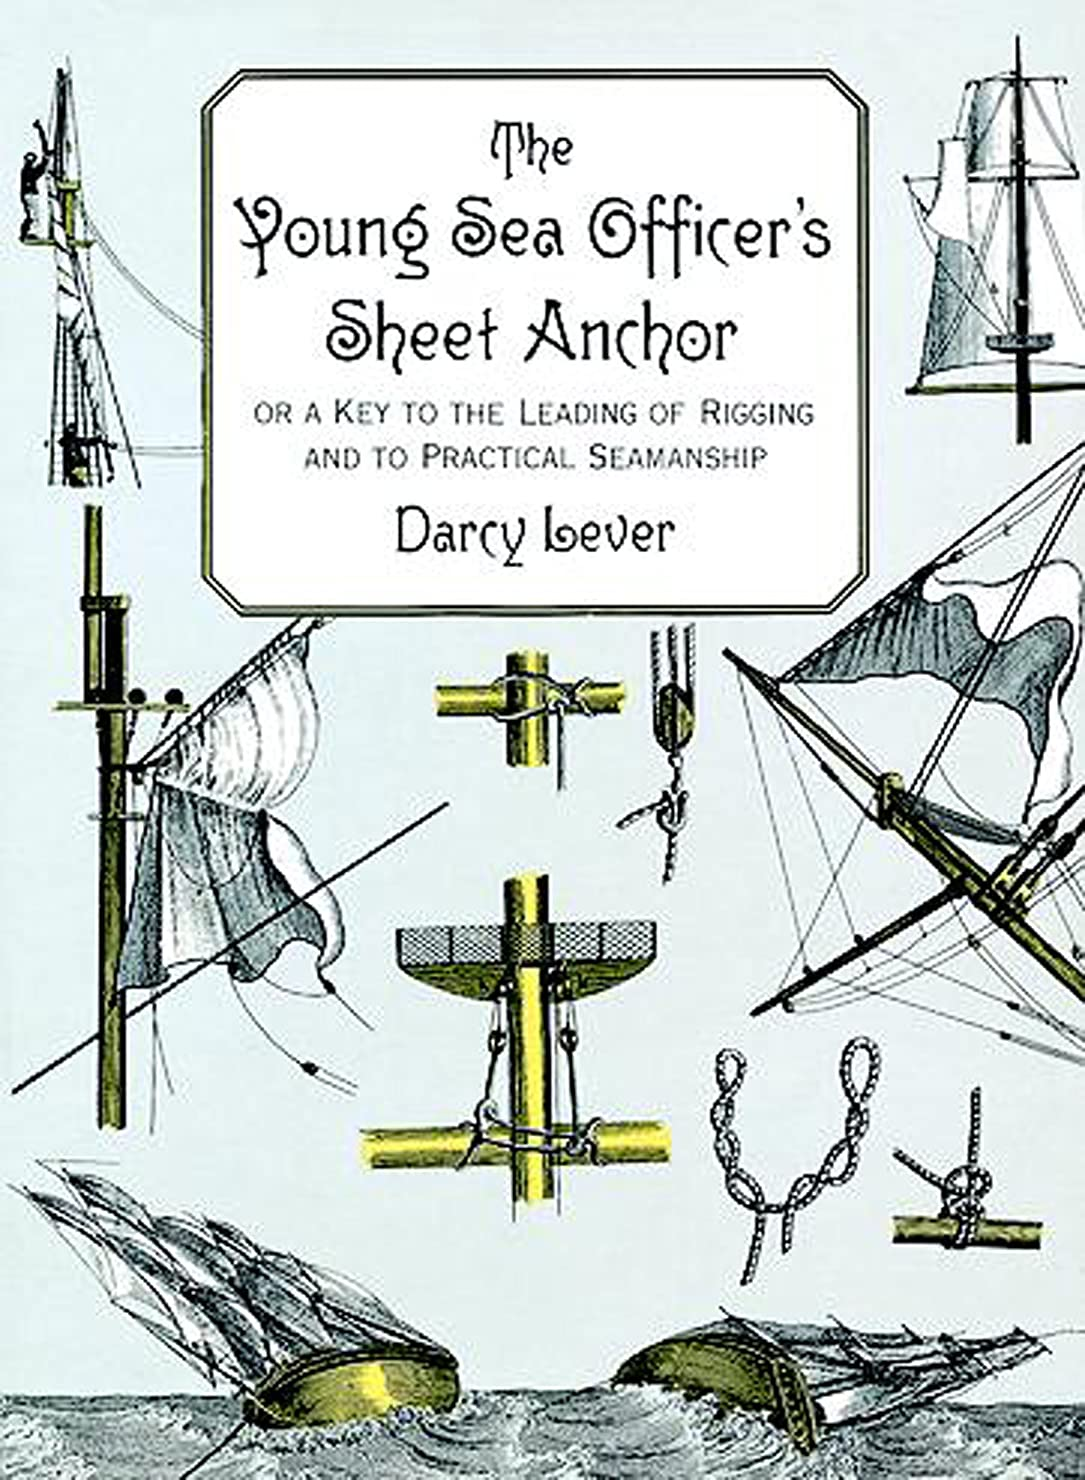 適性忘れられない音楽家The Young Sea Officer's Sheet Anchor: Or a Key to the Leading of Rigging and to Practical Seamanship (Dover Maritime) (English Edition)